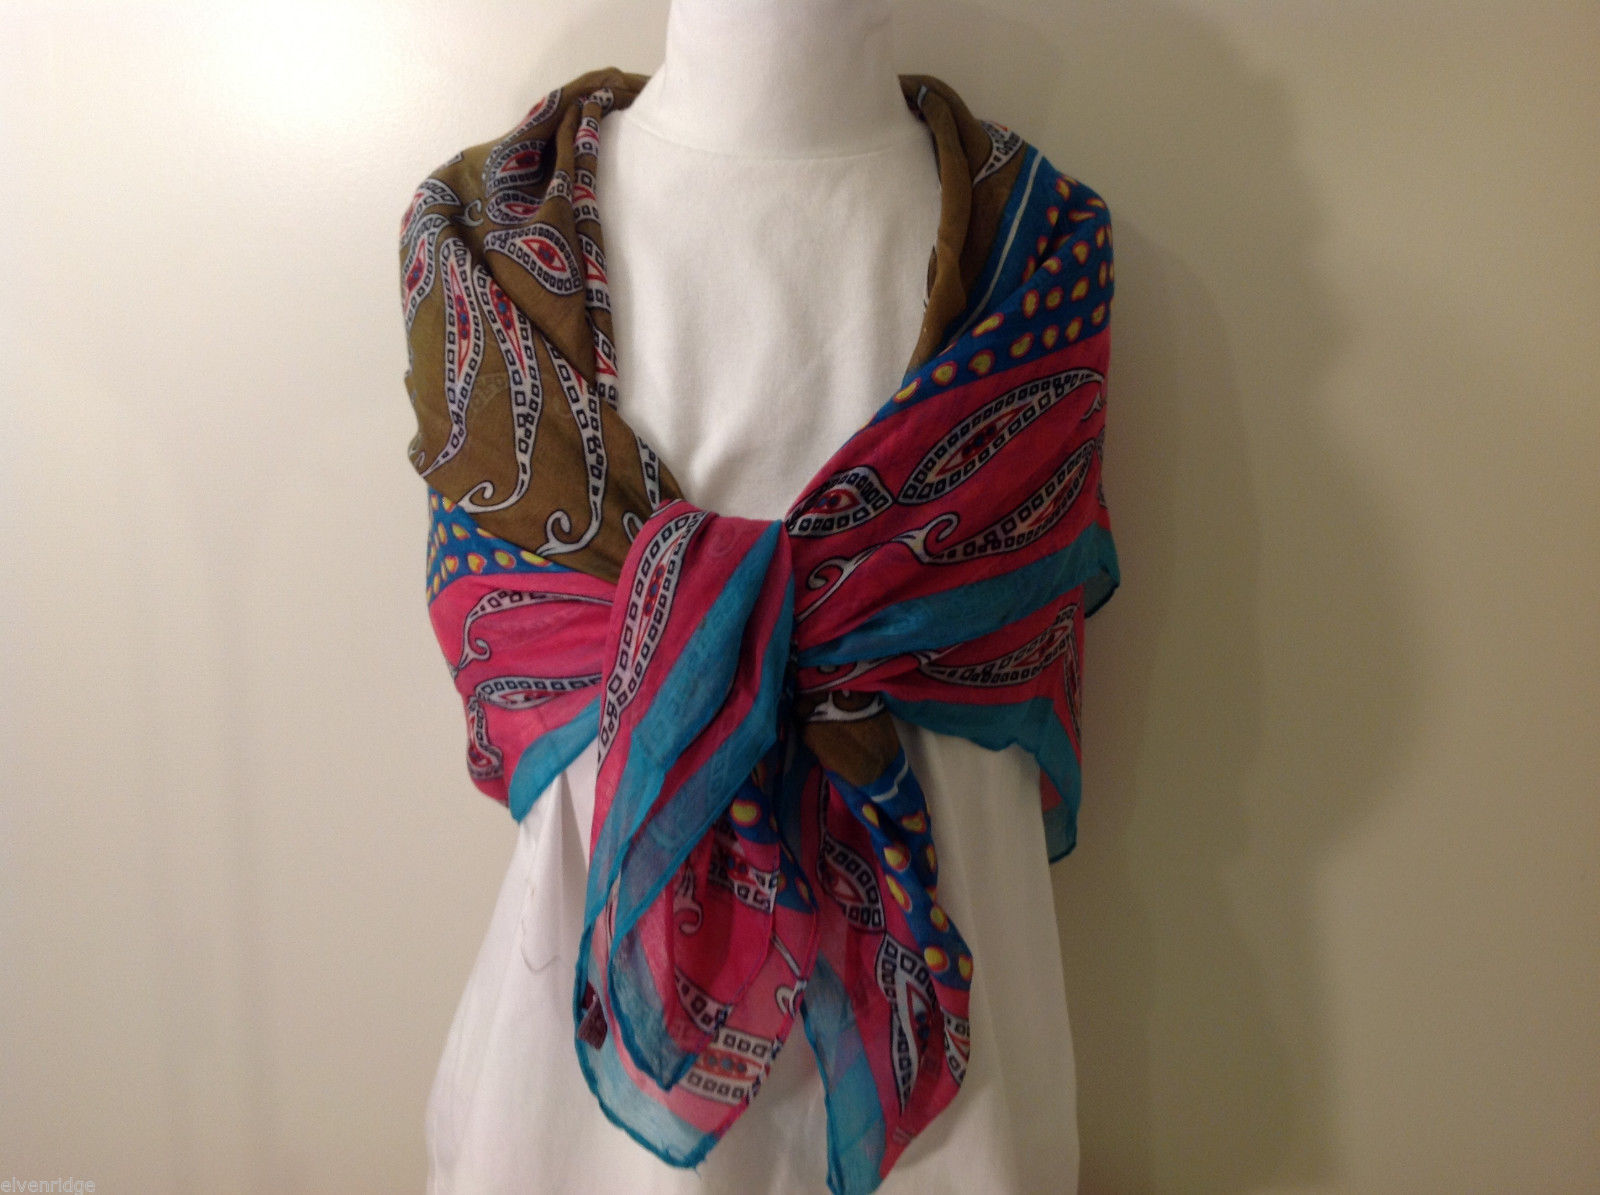 "NEW Brown Teal Blue Pink Patterned Print 100% Polyester Scarf Shawl 75""x 44"""